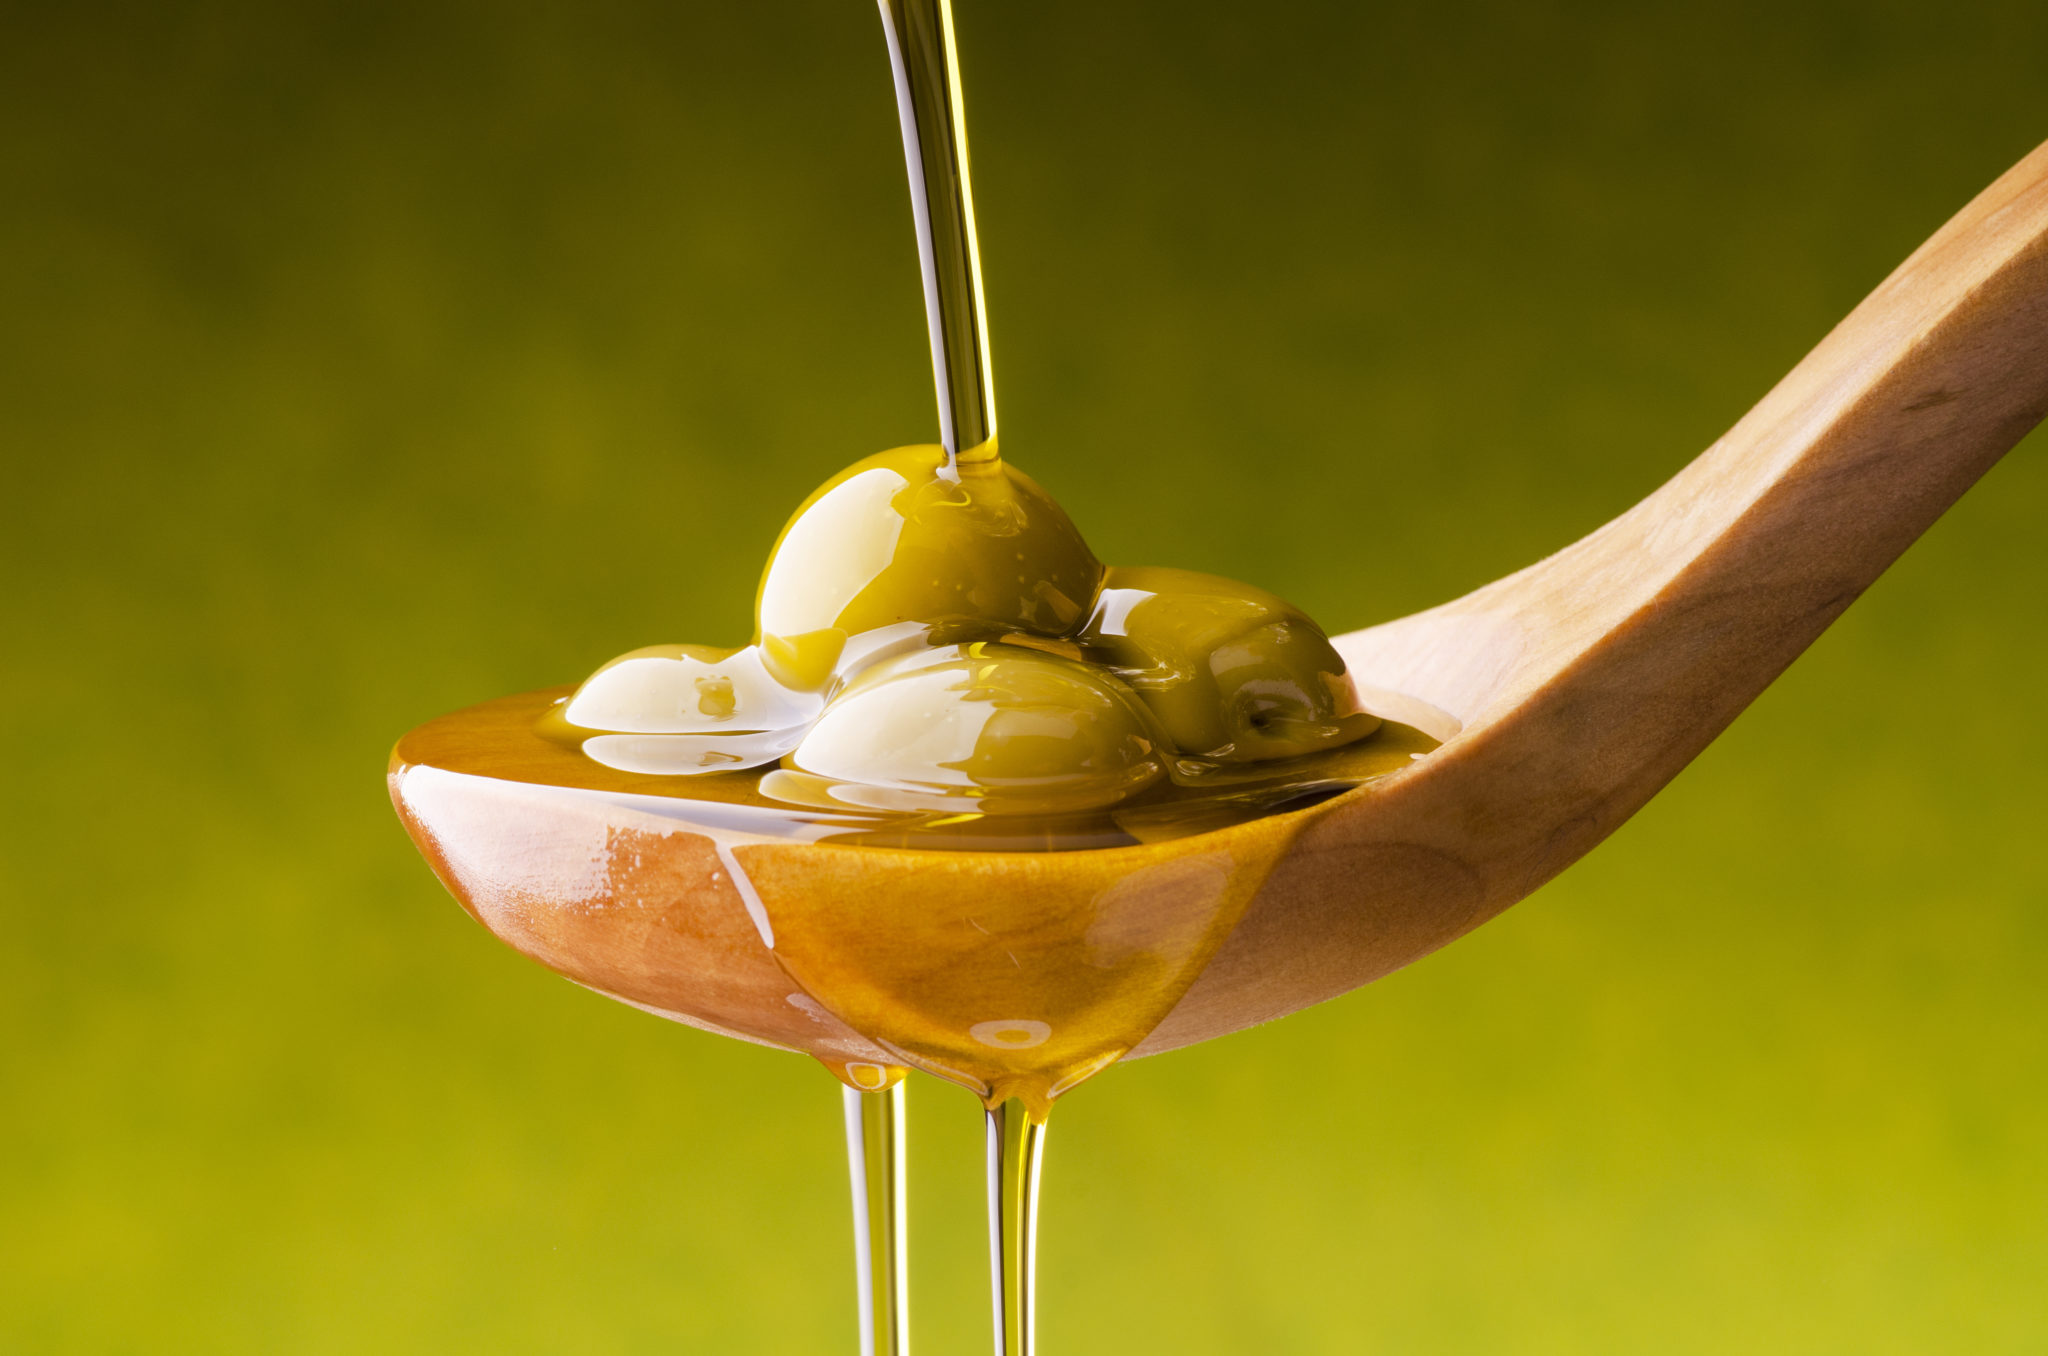 A taste for olive oil – and its health benefits